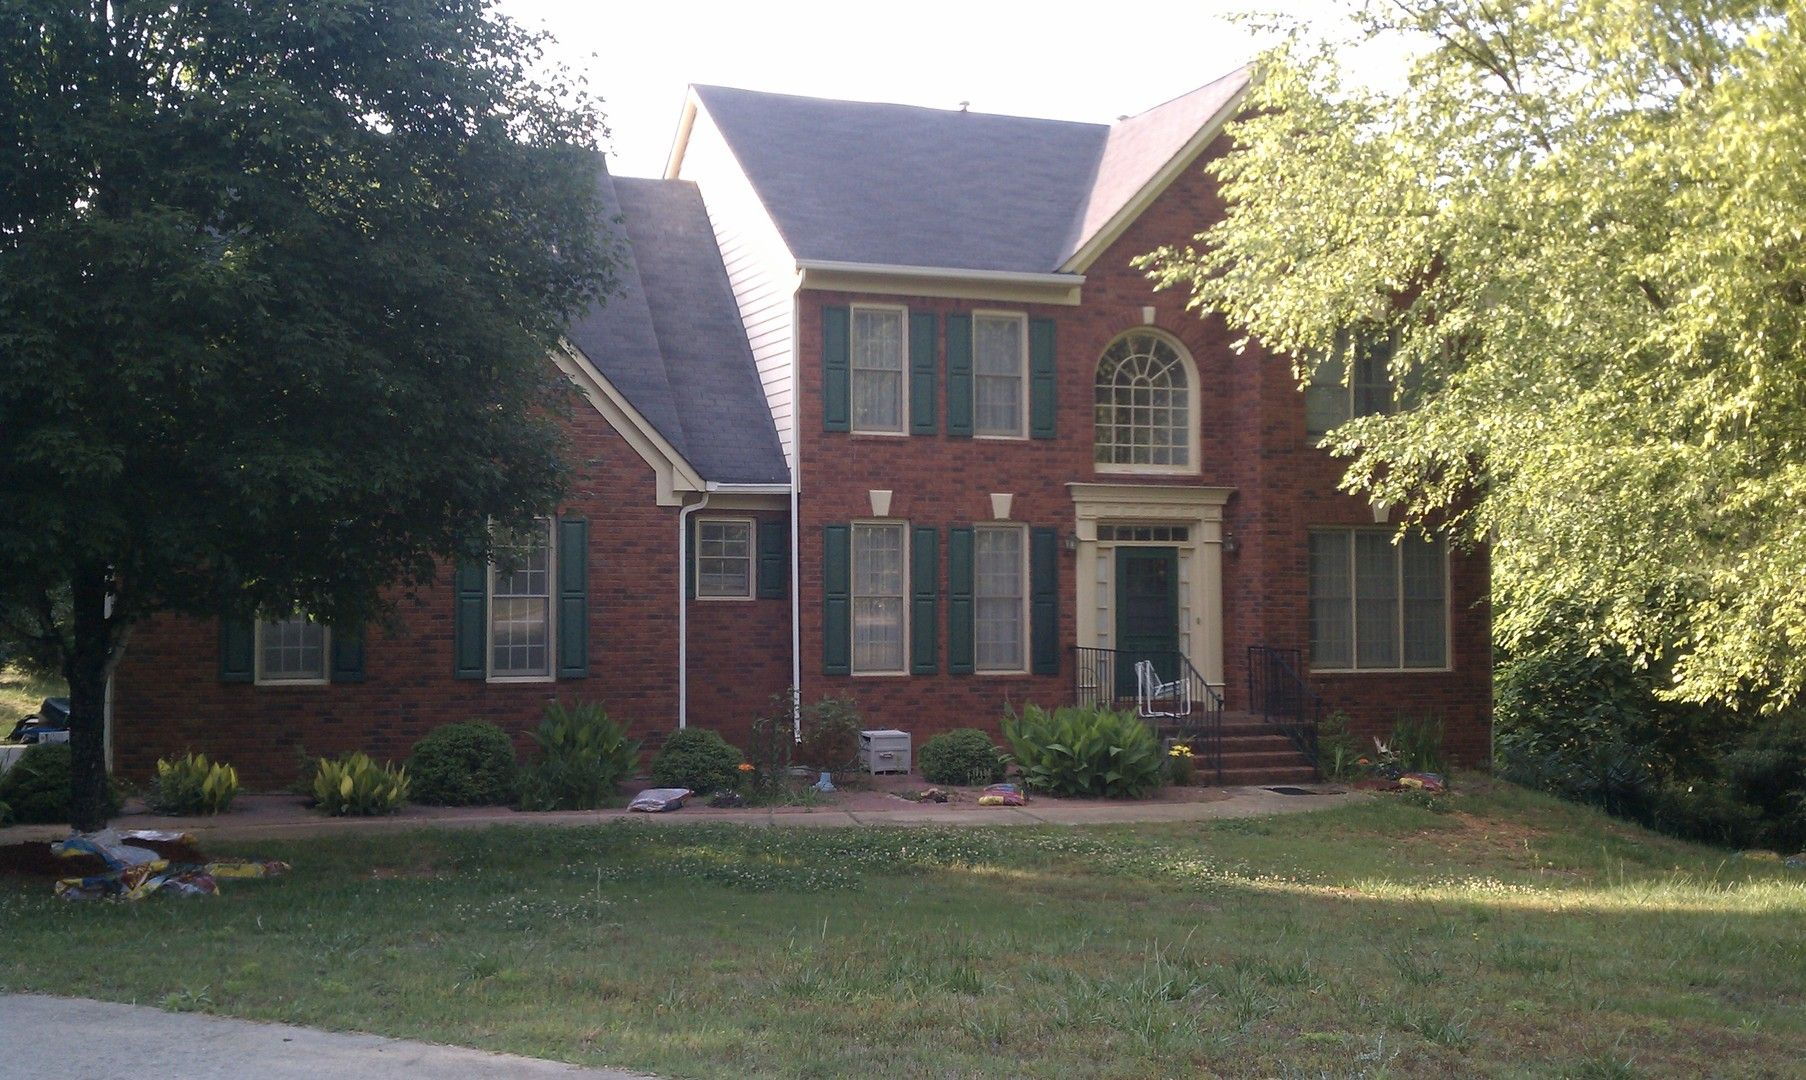 140 hillcrest point spacious home on large lot for rent